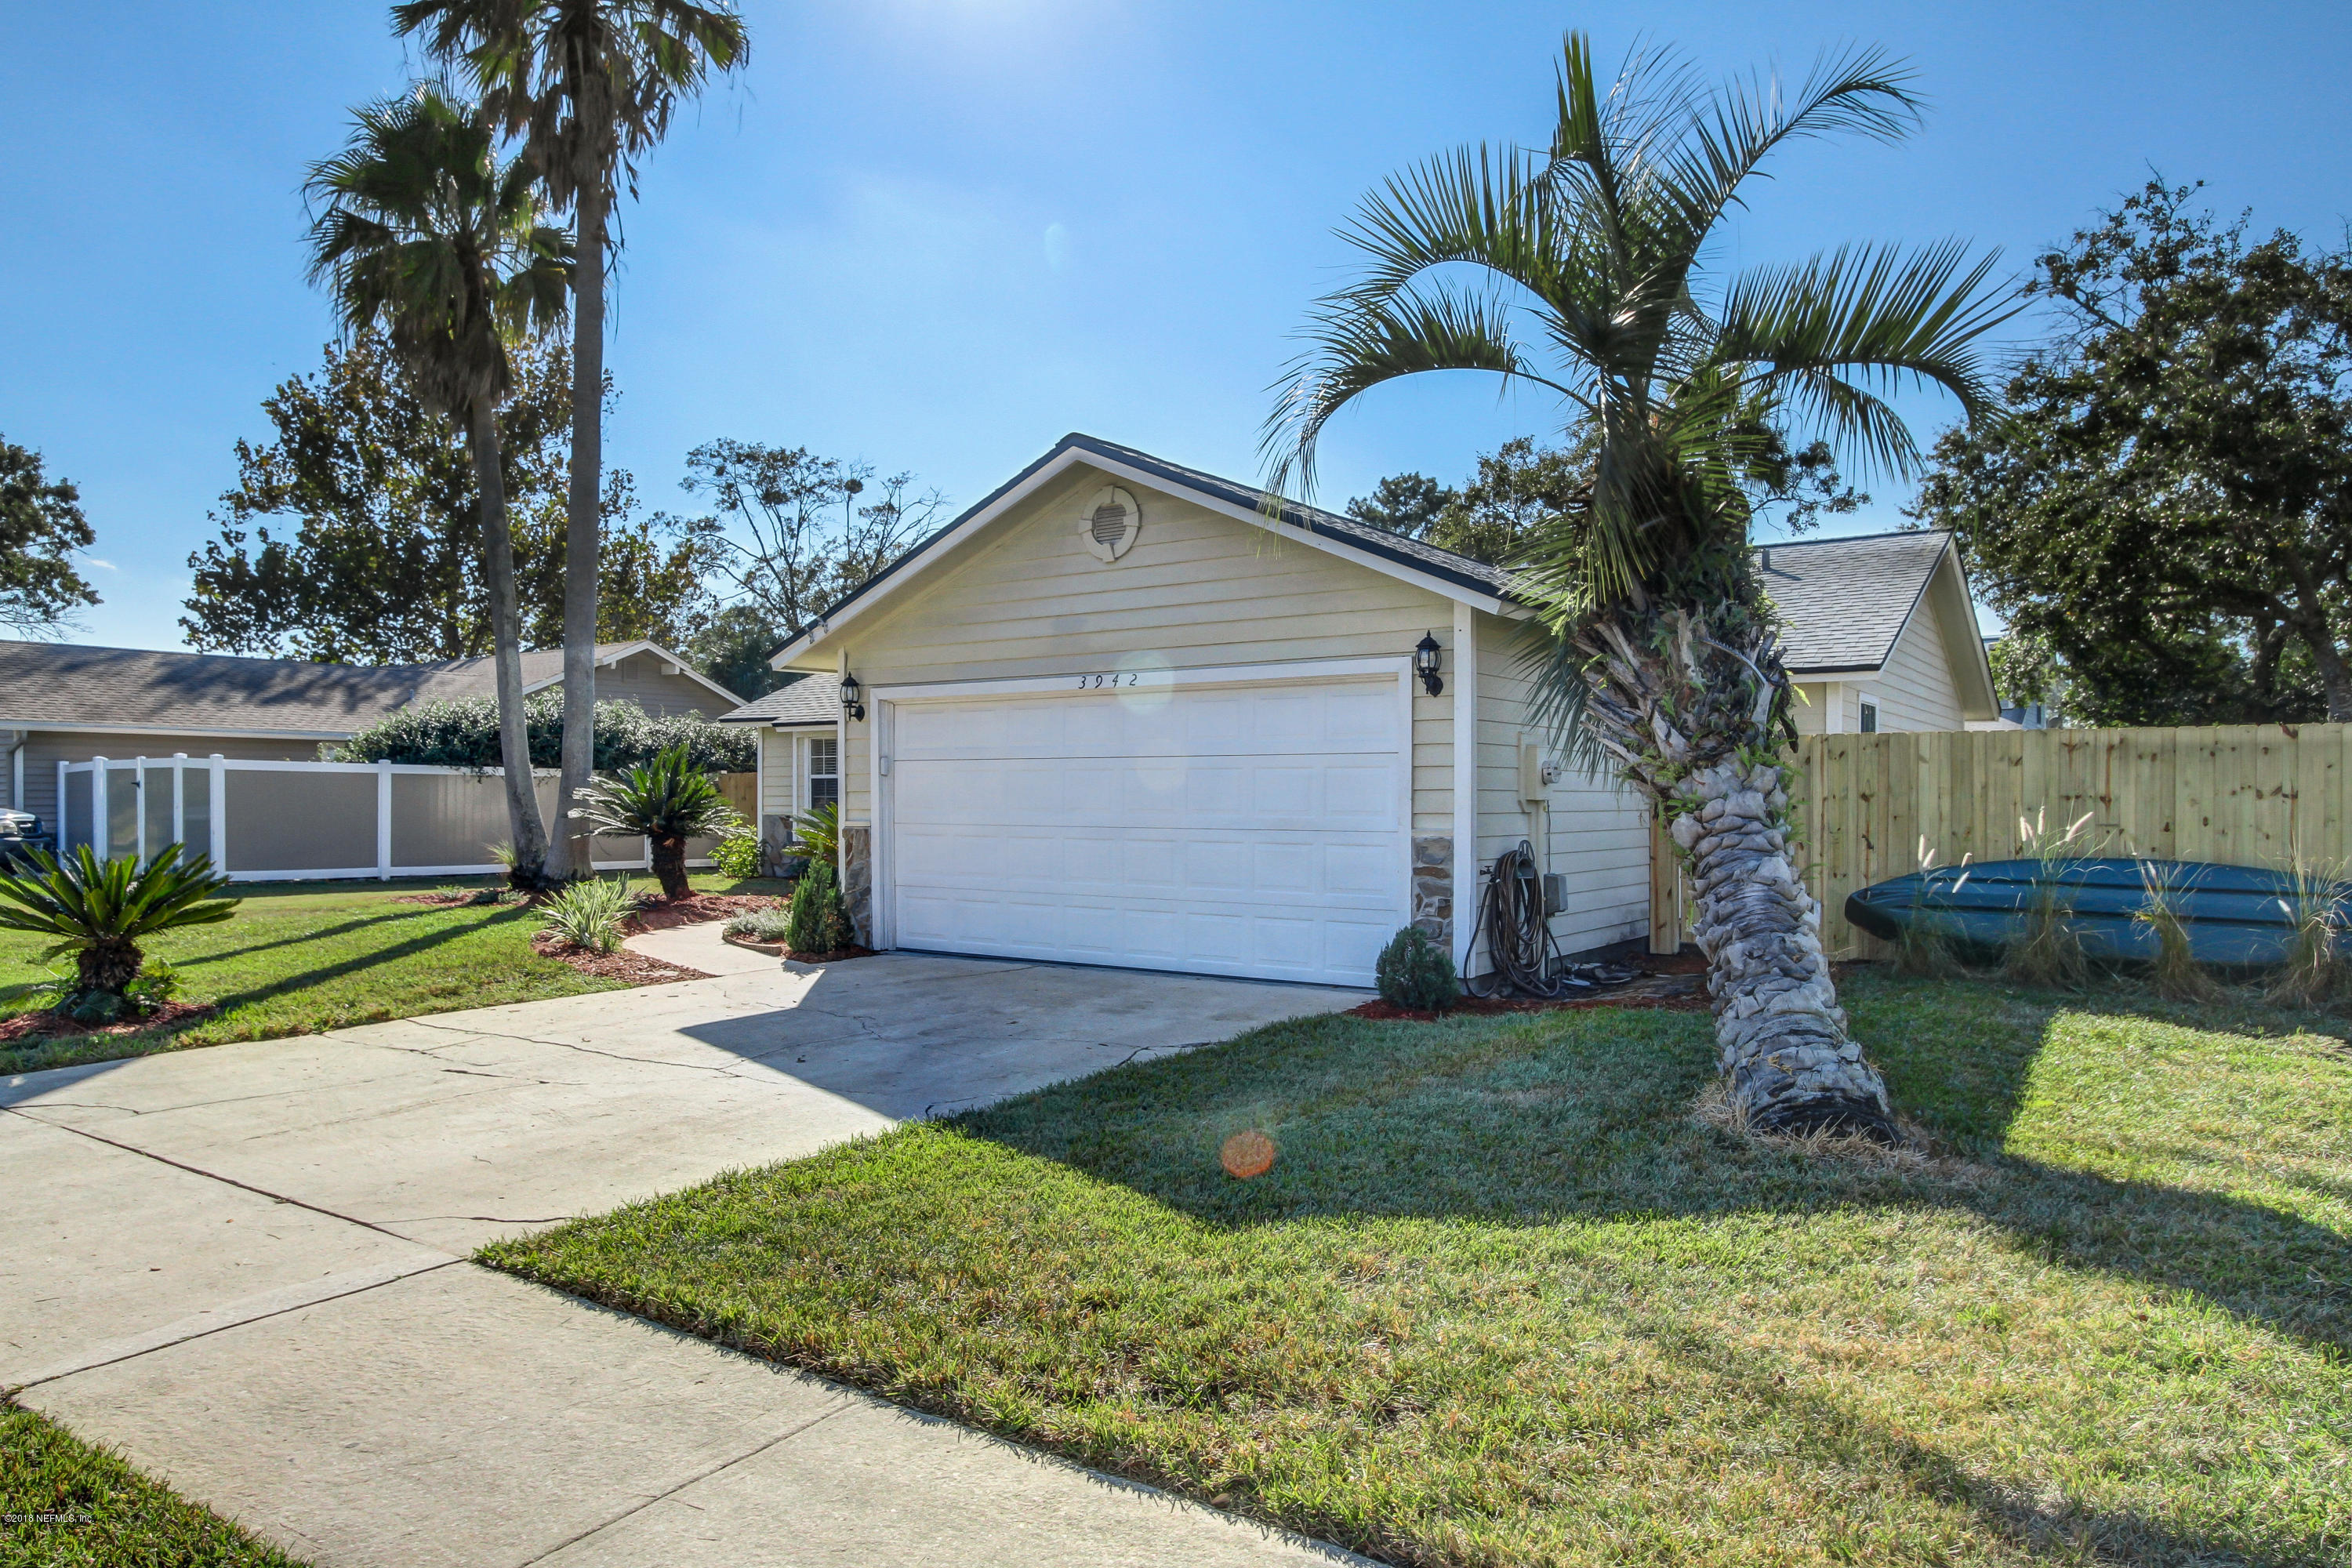 3942 DEMERY, JACKSONVILLE, FLORIDA 32250, 4 Bedrooms Bedrooms, ,2 BathroomsBathrooms,Residential - single family,For sale,DEMERY,964723